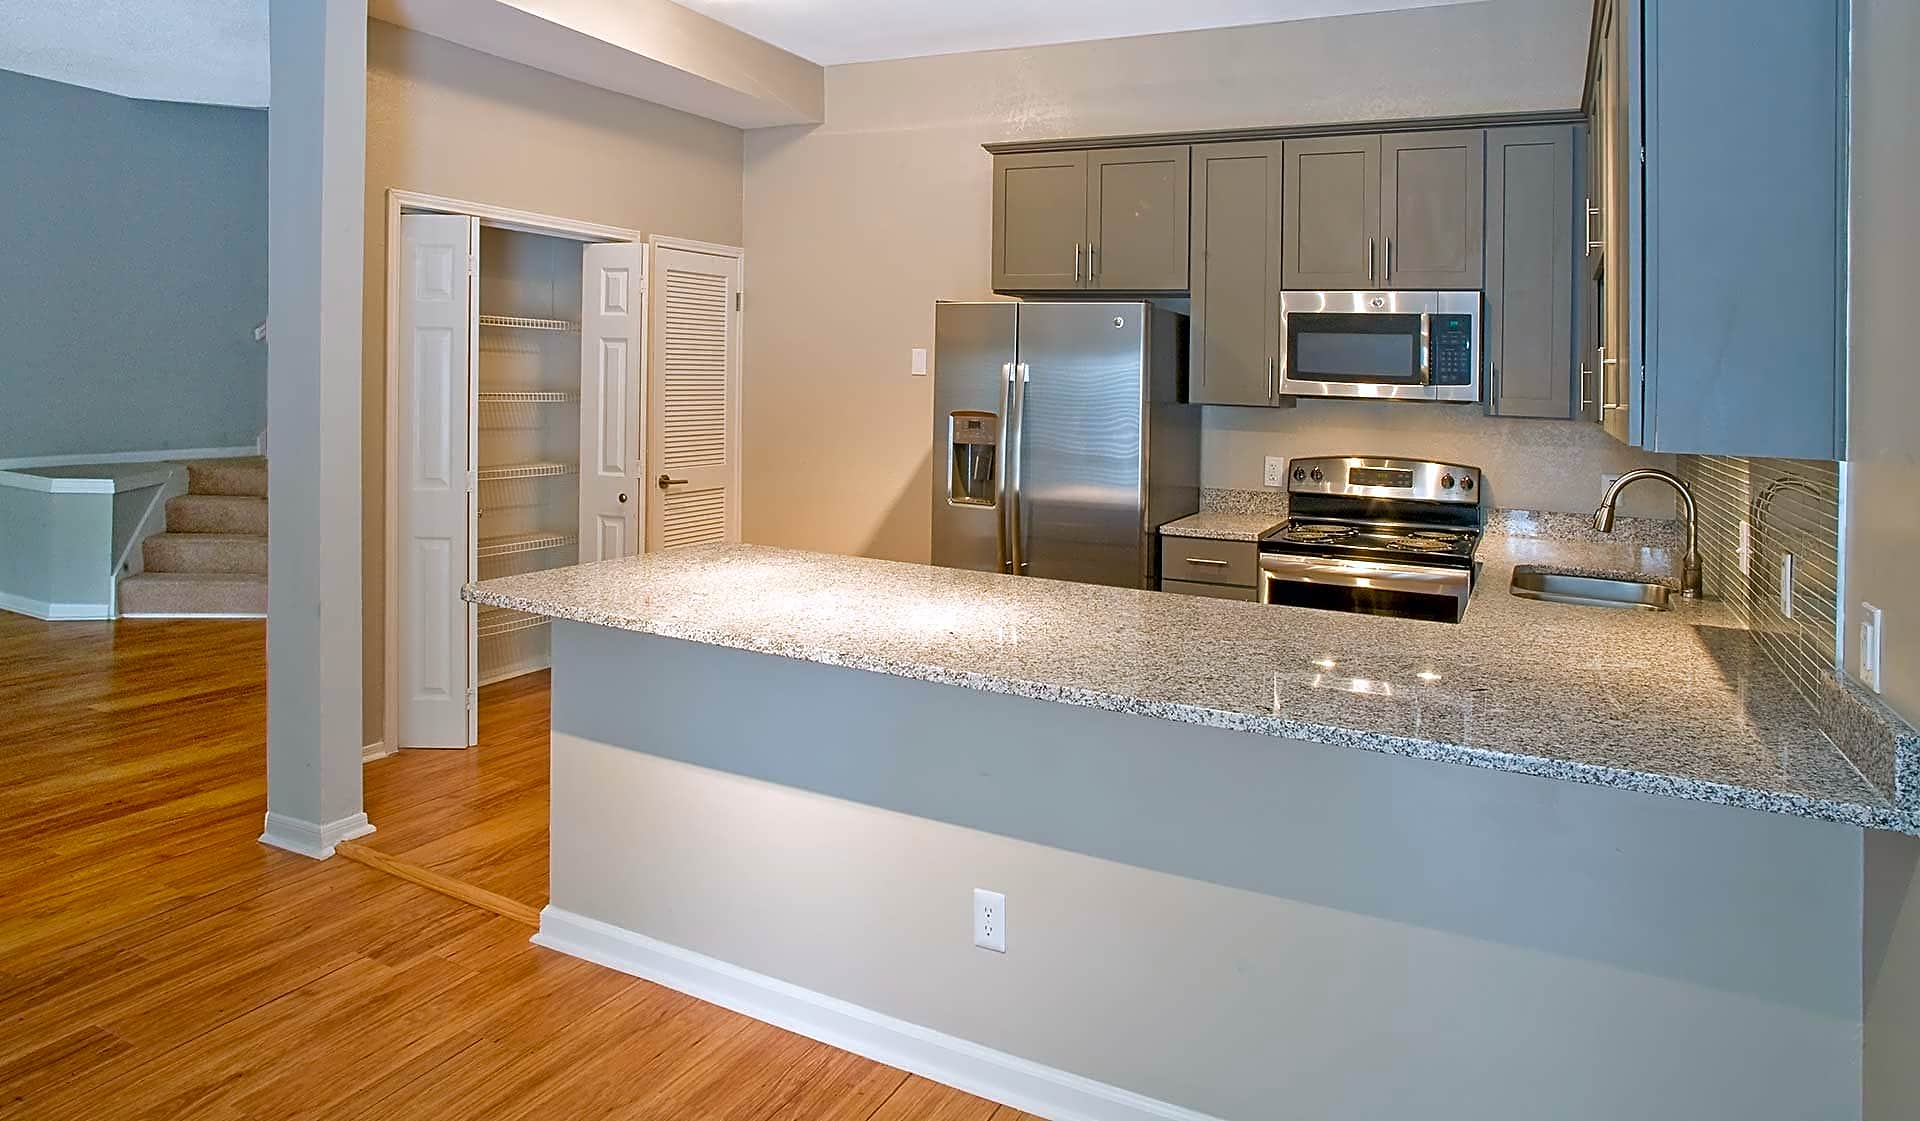 Designer kitchen with stainless steel appliances, granite countertops and premium cabinetry in select homes